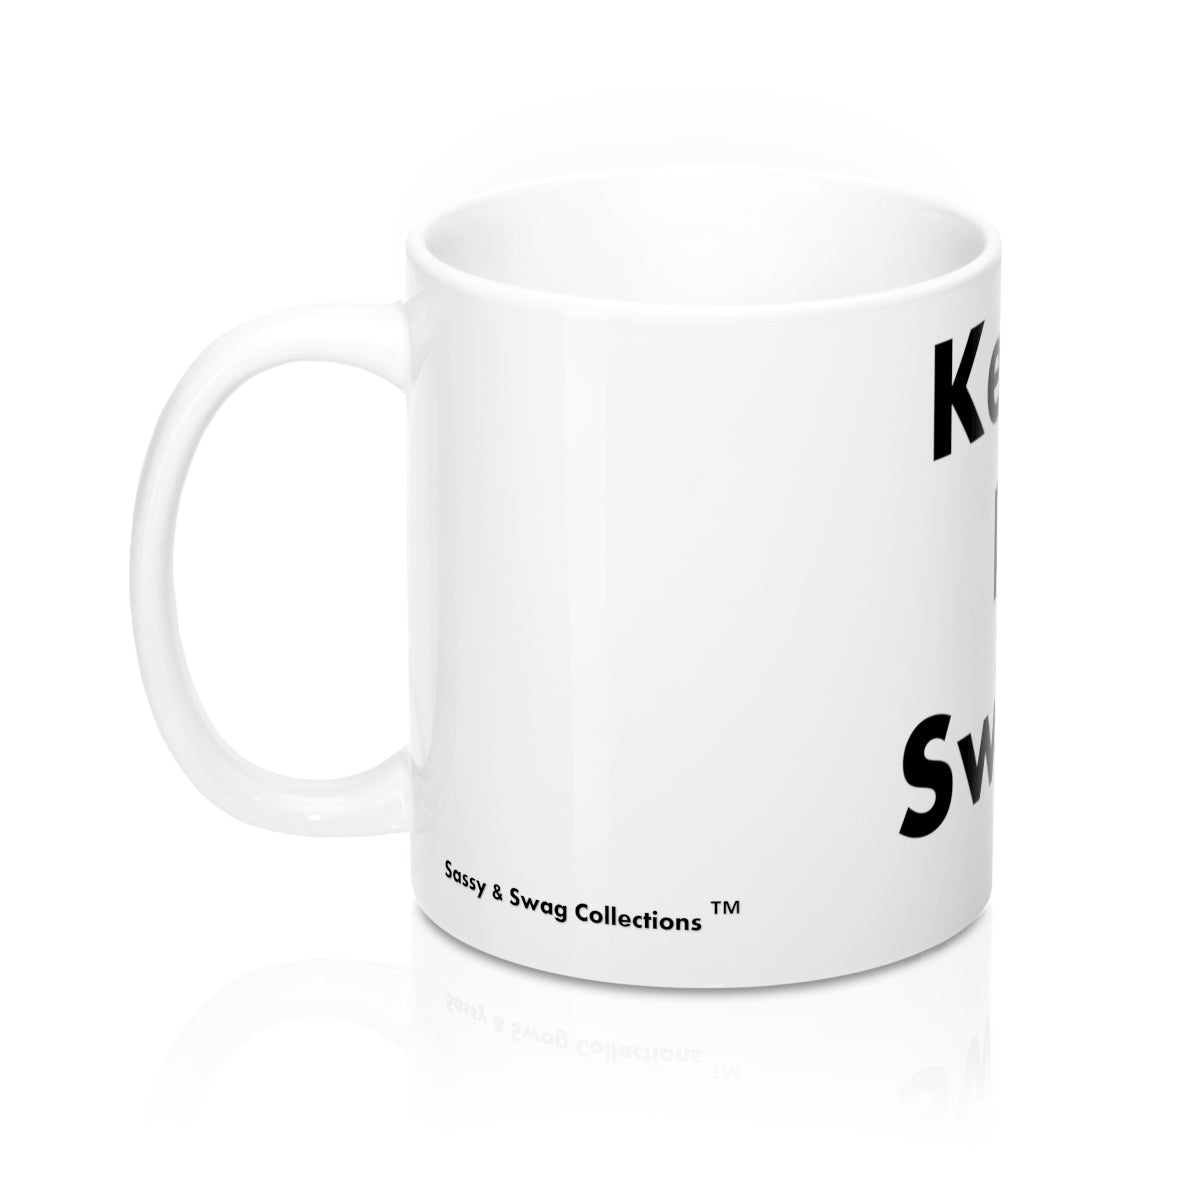 Sassy & Swag Collections - Keep It Swag Mug 11oz